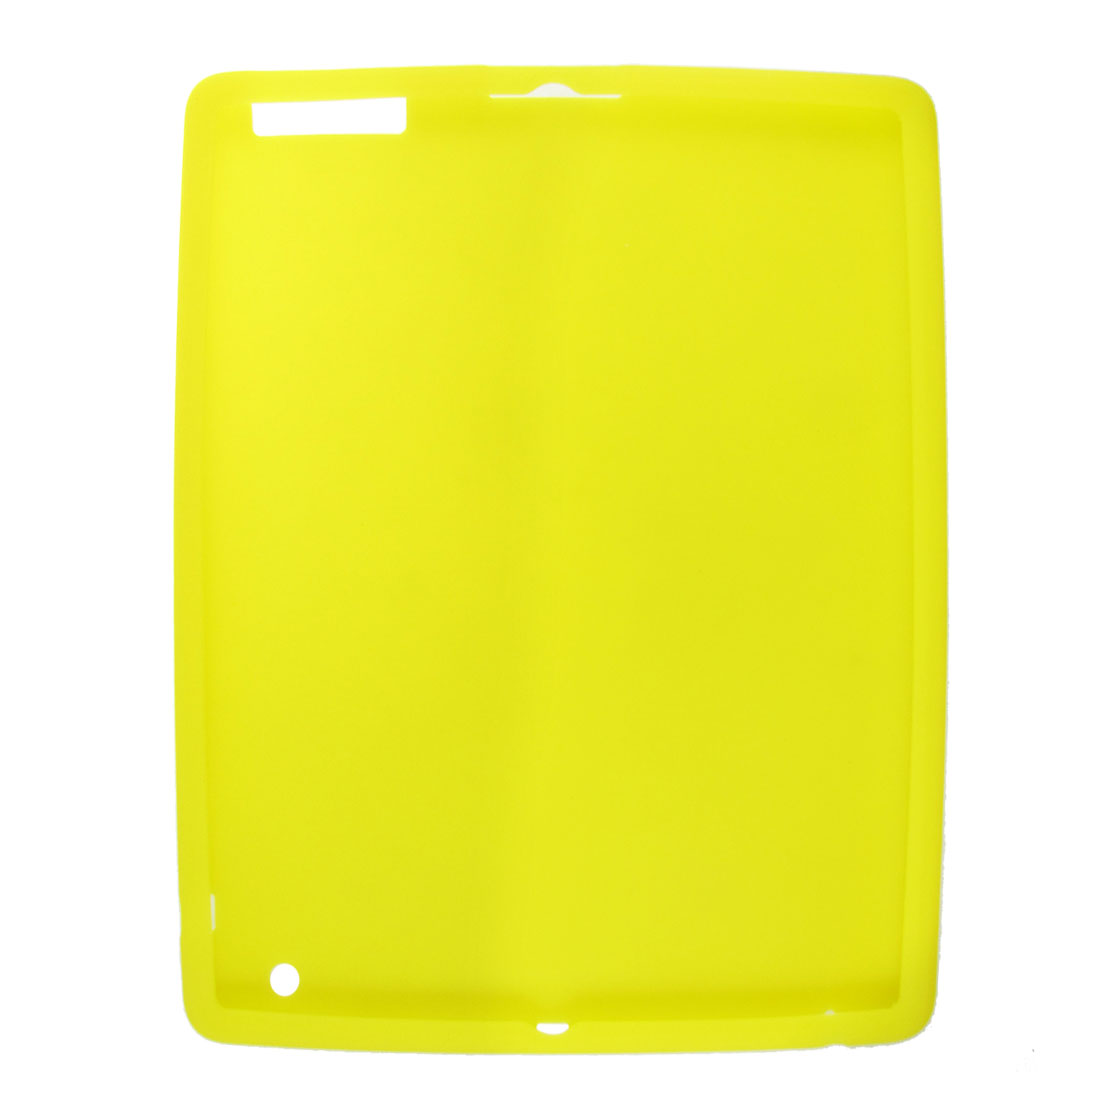 Soft Silicone Skin Yellow Cover for Apple iPad 3rd Generation